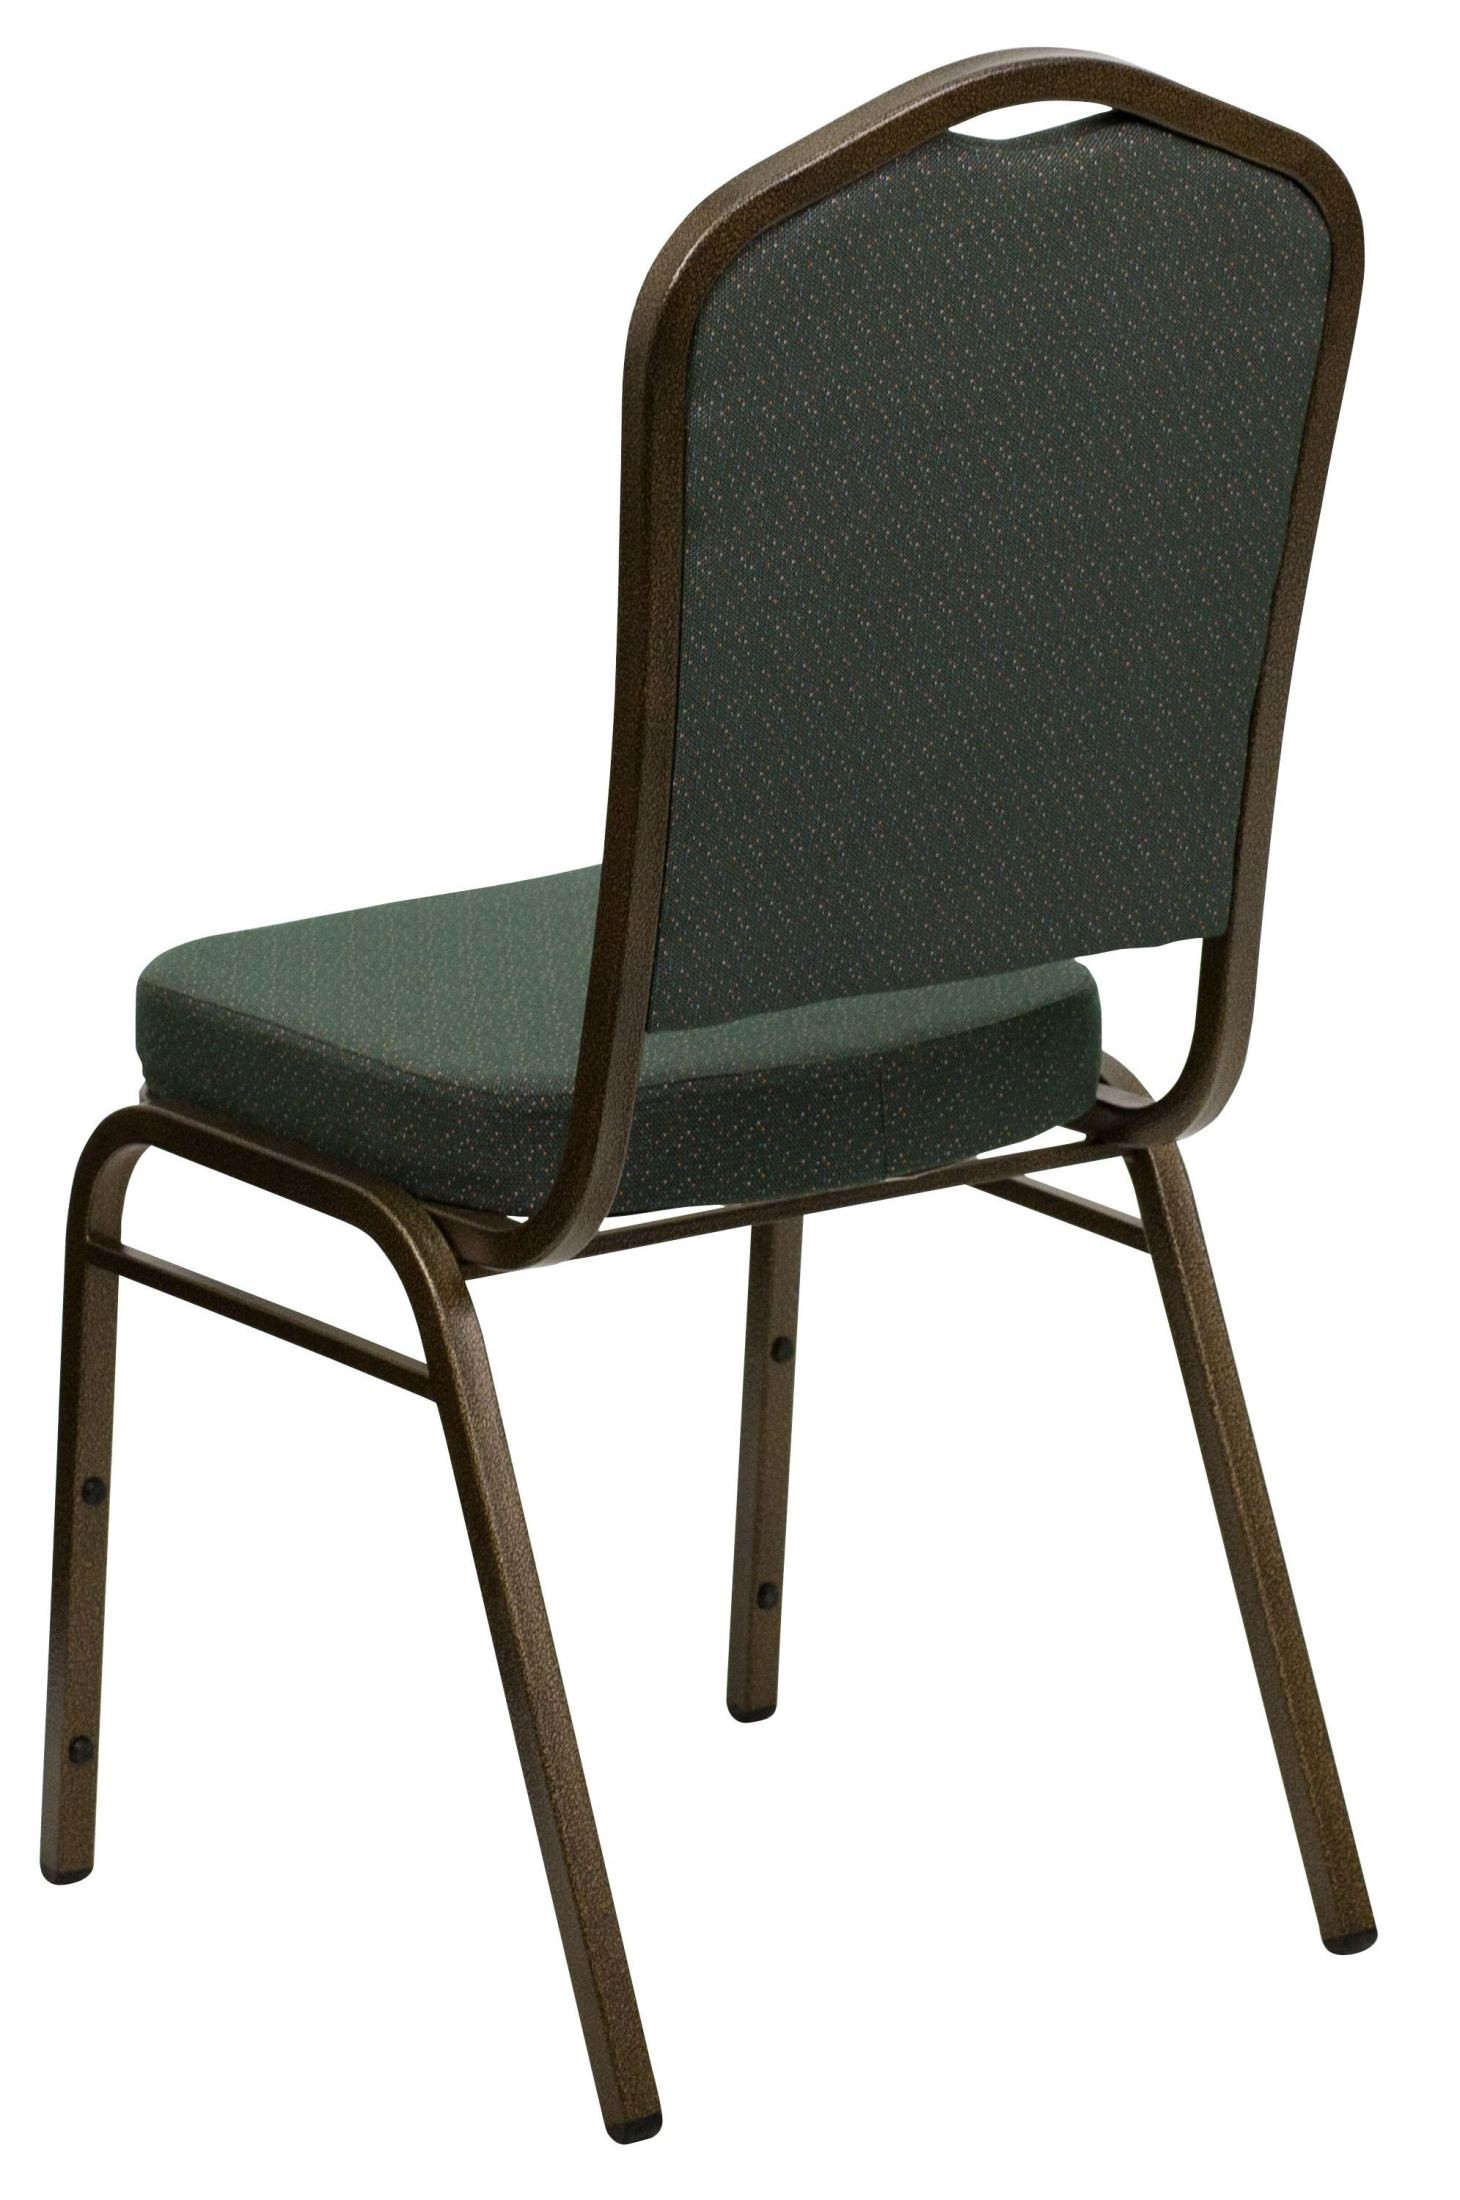 Hercules Stacking Chairs Hercules Series Crown Back Stacking Green Pattern Fabric